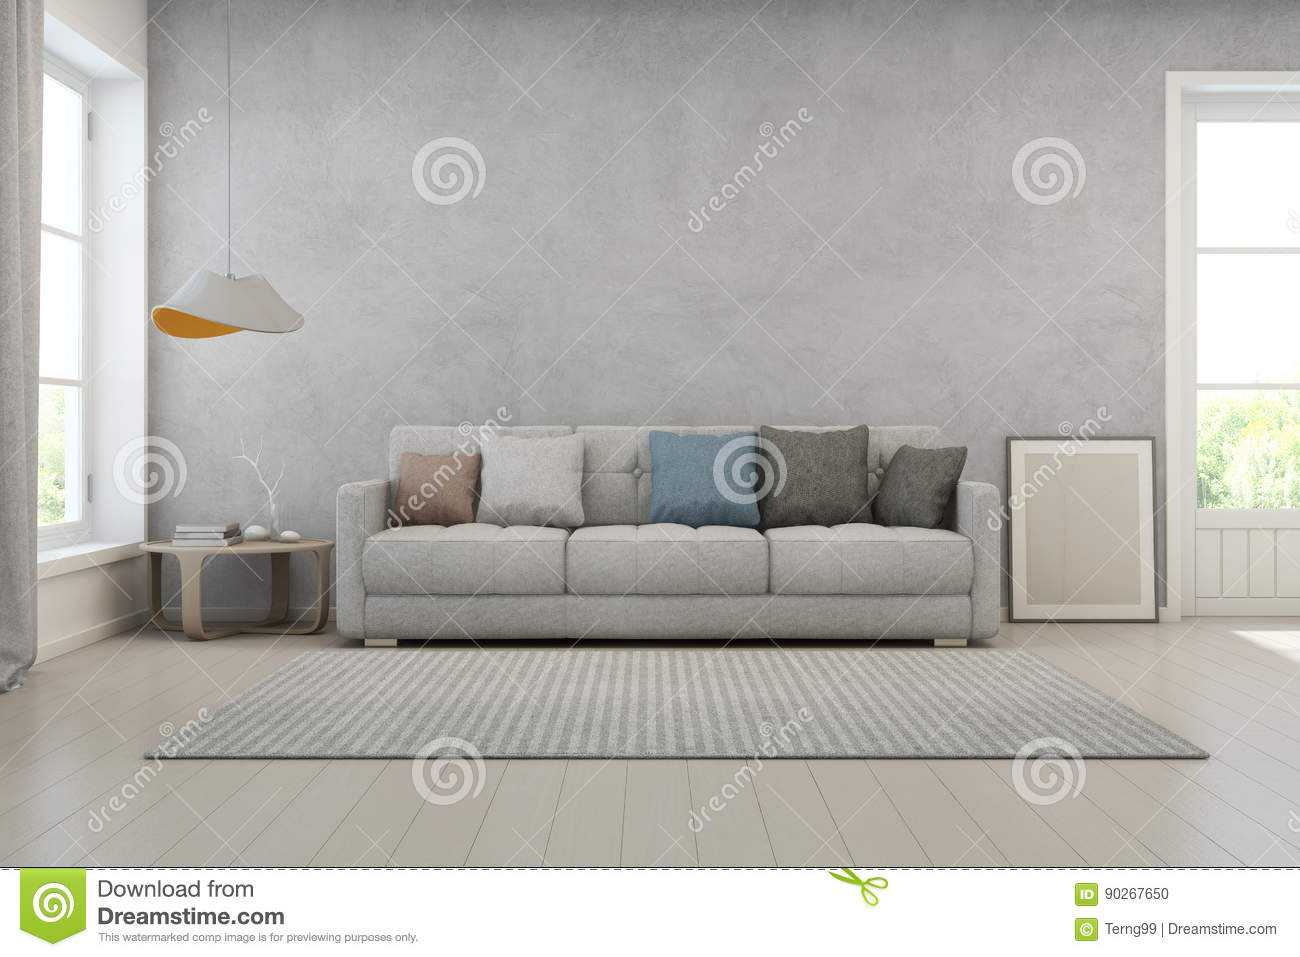 3d rendering of interior with sofa coffee table and lamp